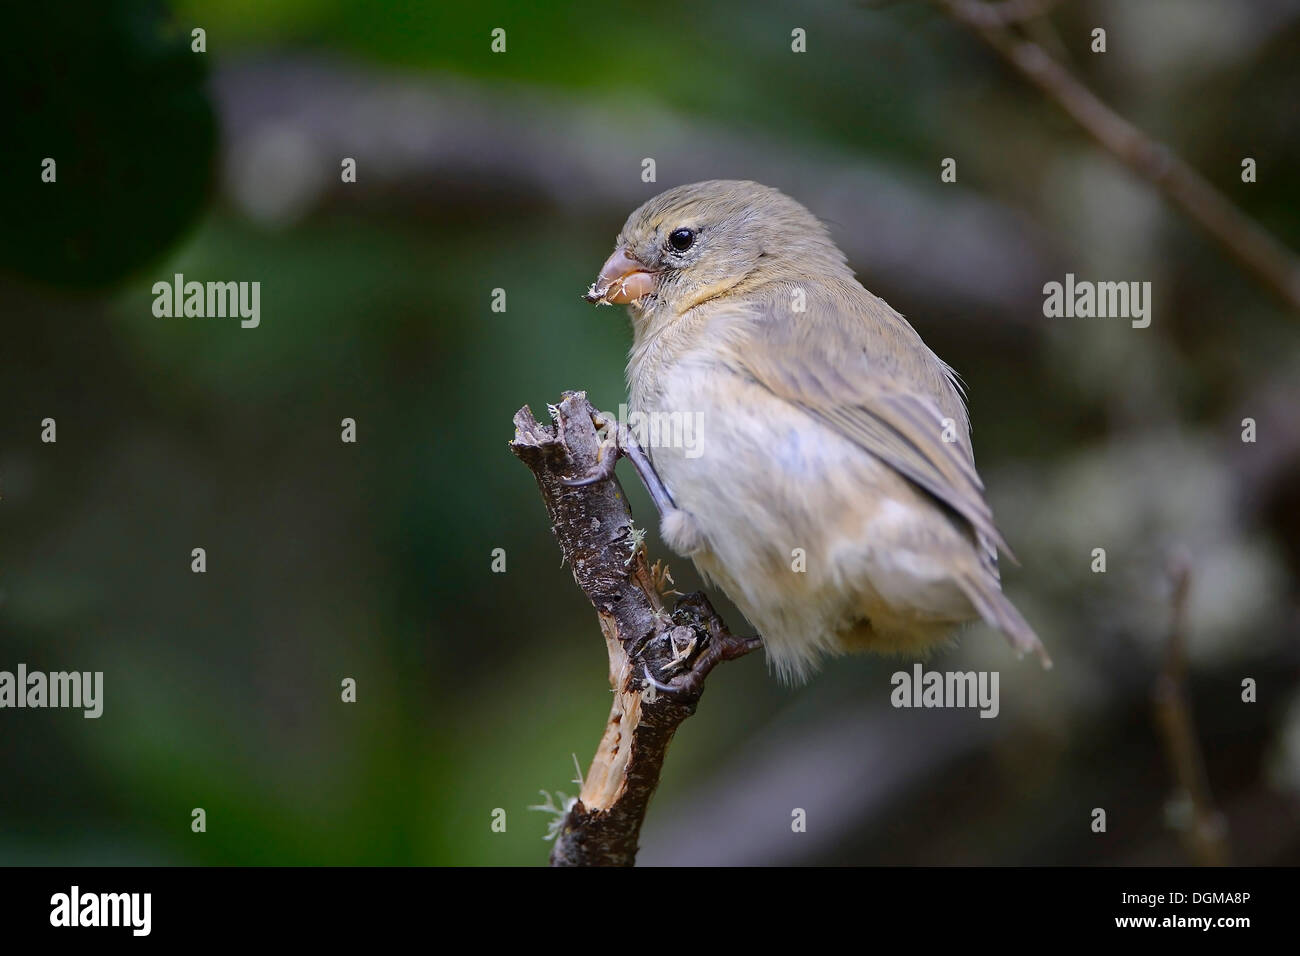 Small Tree Finch (Camarhynchus parvulus), Isabela Island, Galapagos Islands, UNESCO World Natural Heritage Site, Ecuador - Stock Image